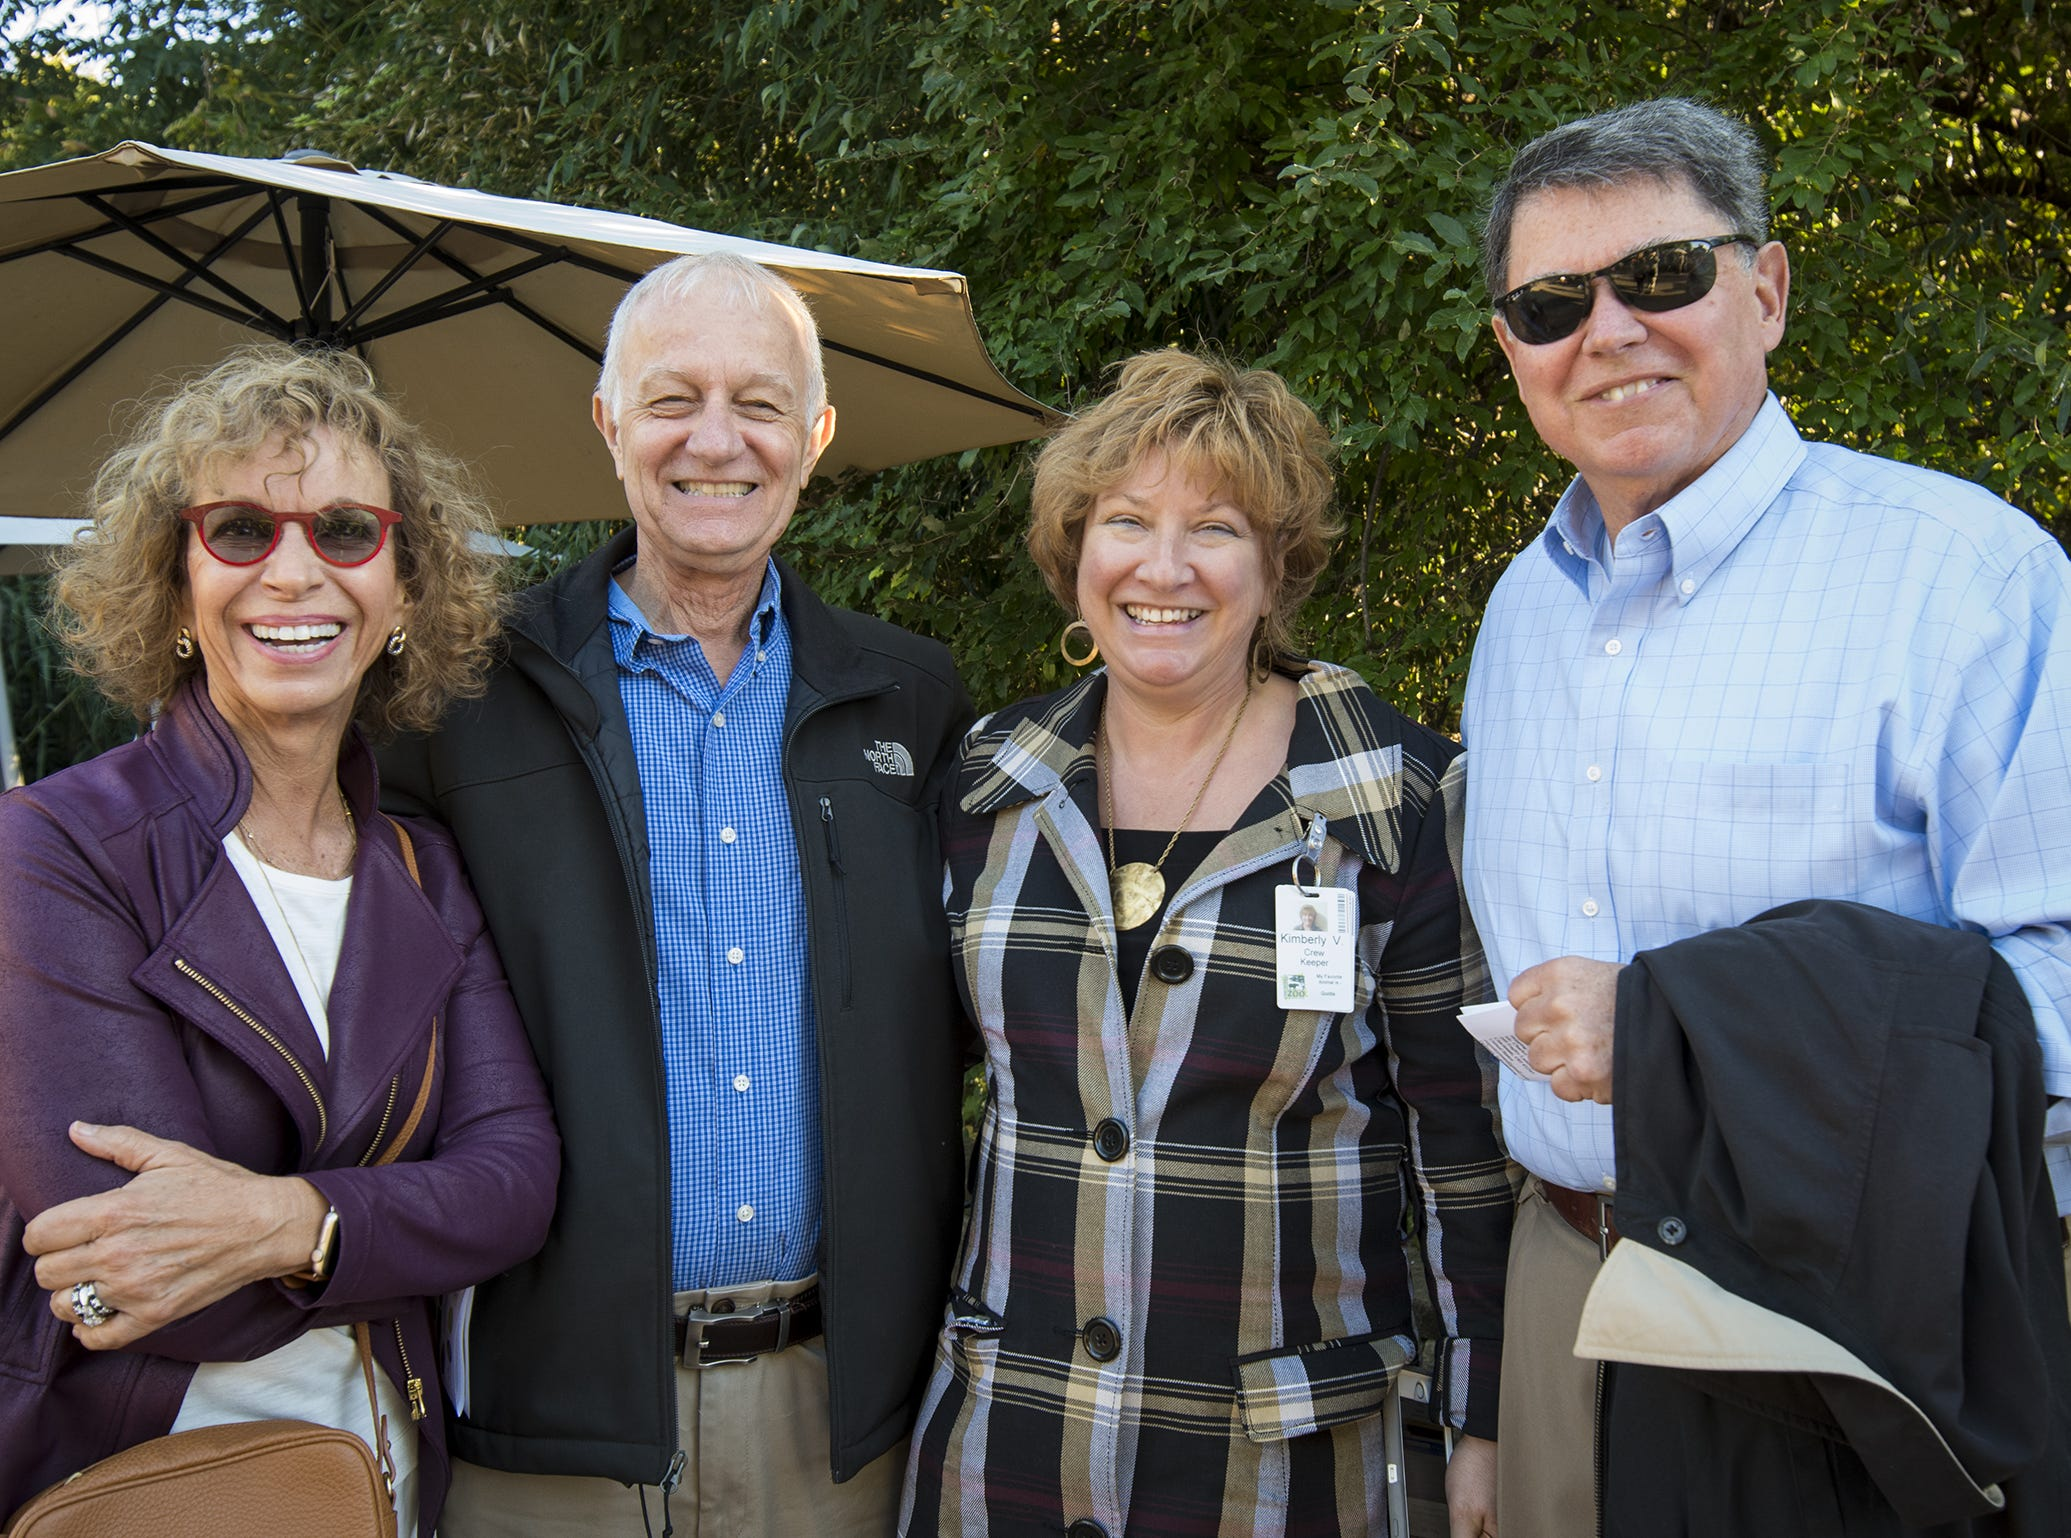 Linda Moore, Rick Serge, Kim Vonder Meulen and Charlie Gentry attend Zoo Brew.